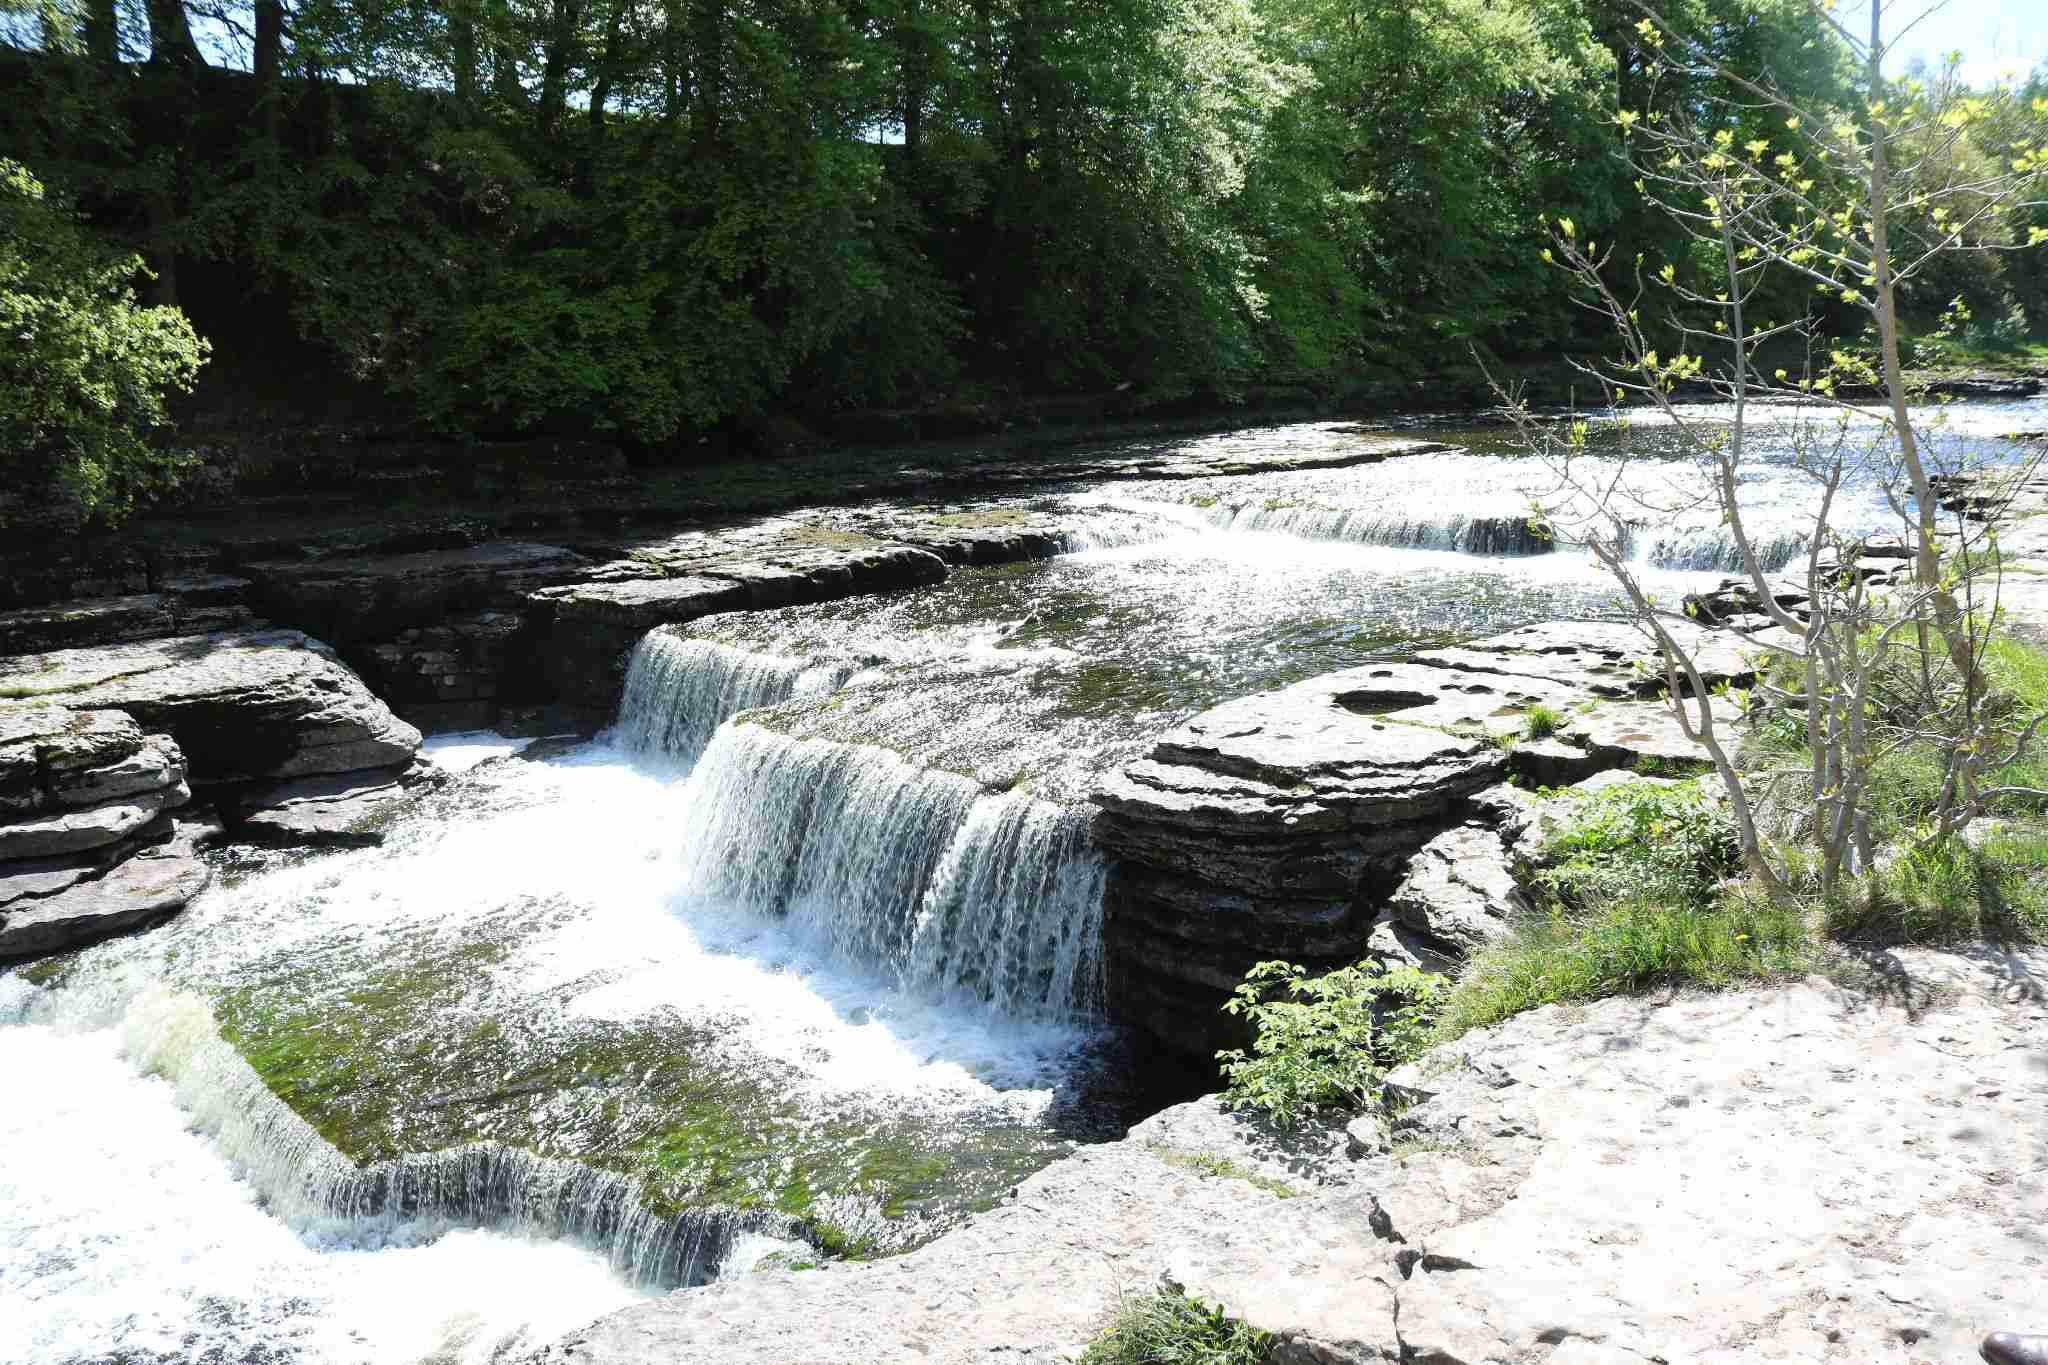 Lower falls in river Ure